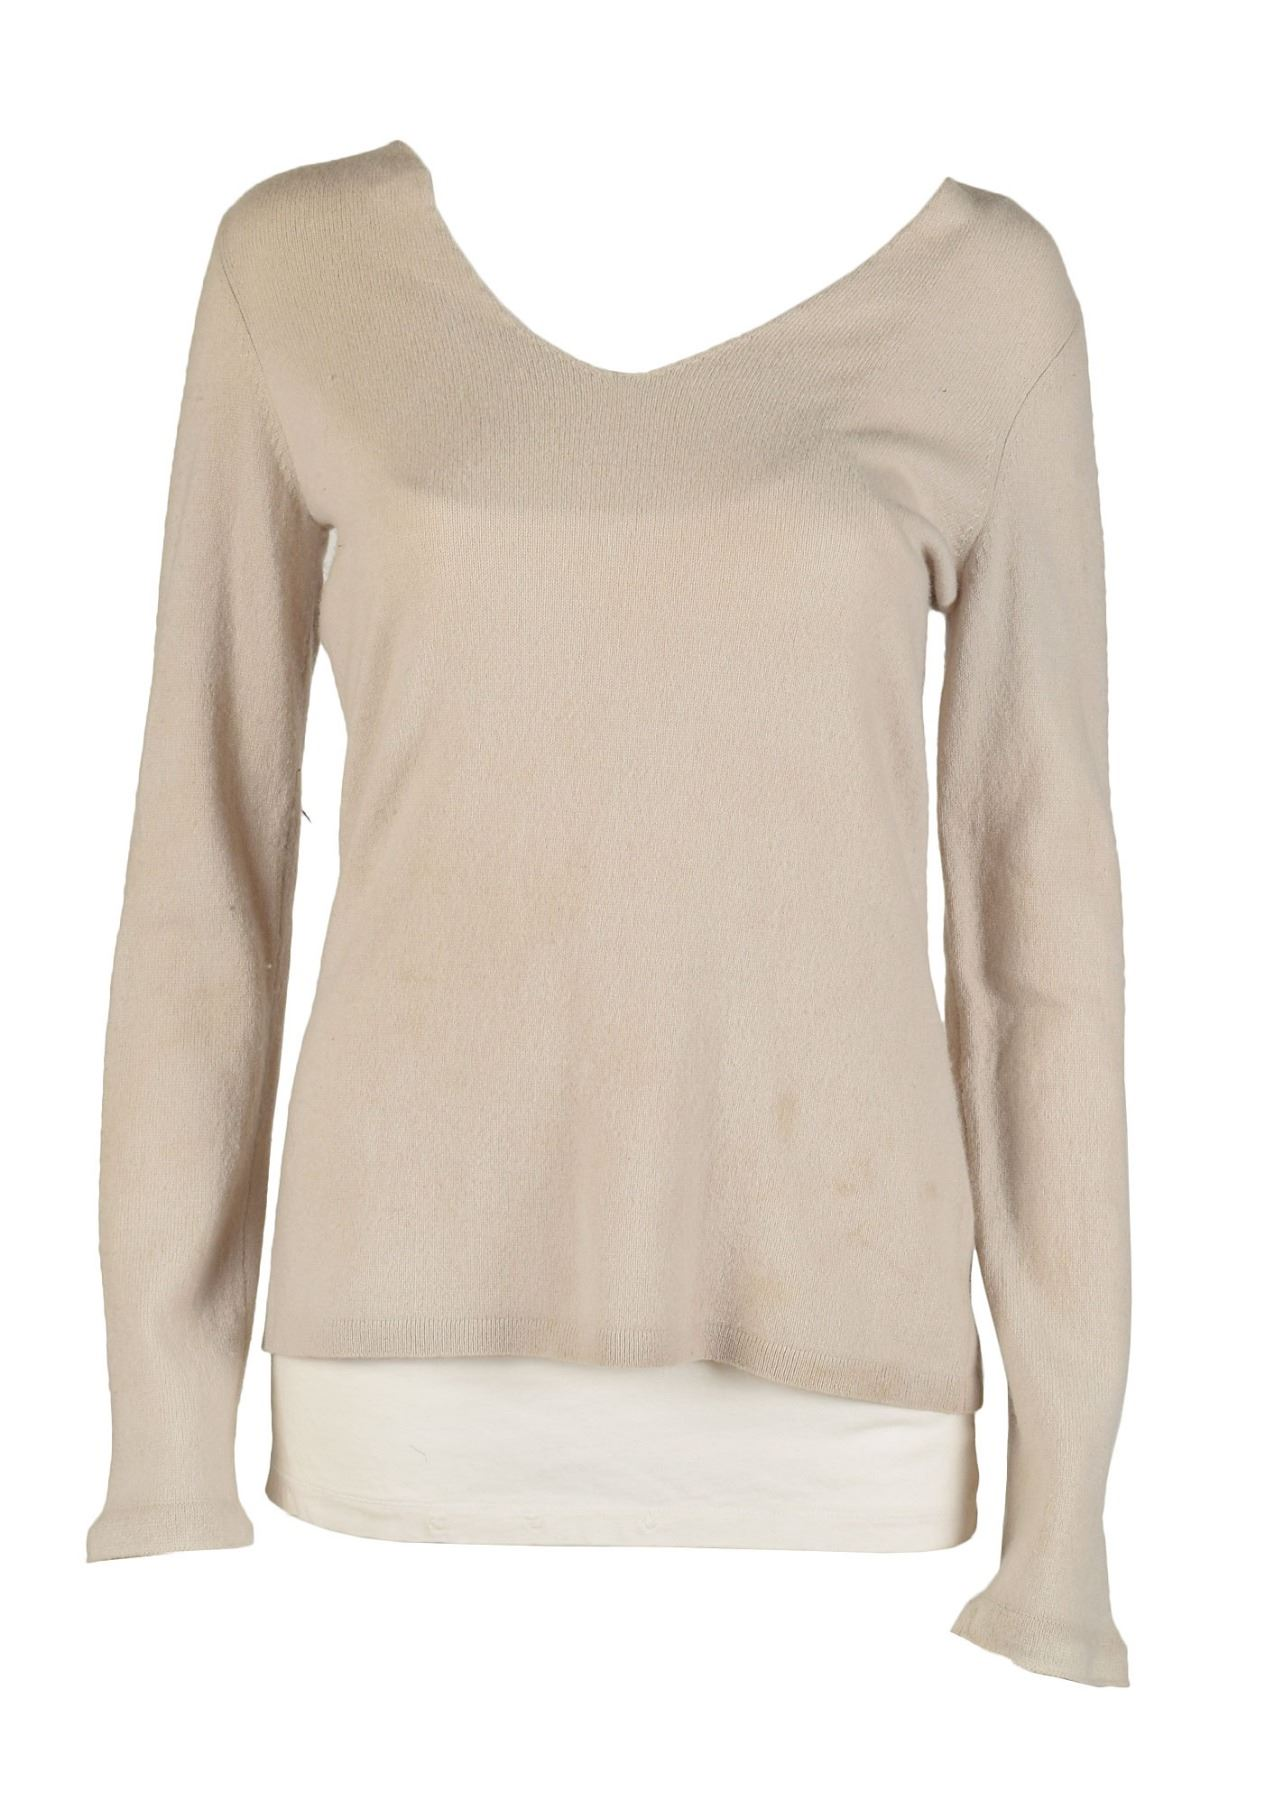 Diane Lane's Screen-Worn Undershirt and Sweater from